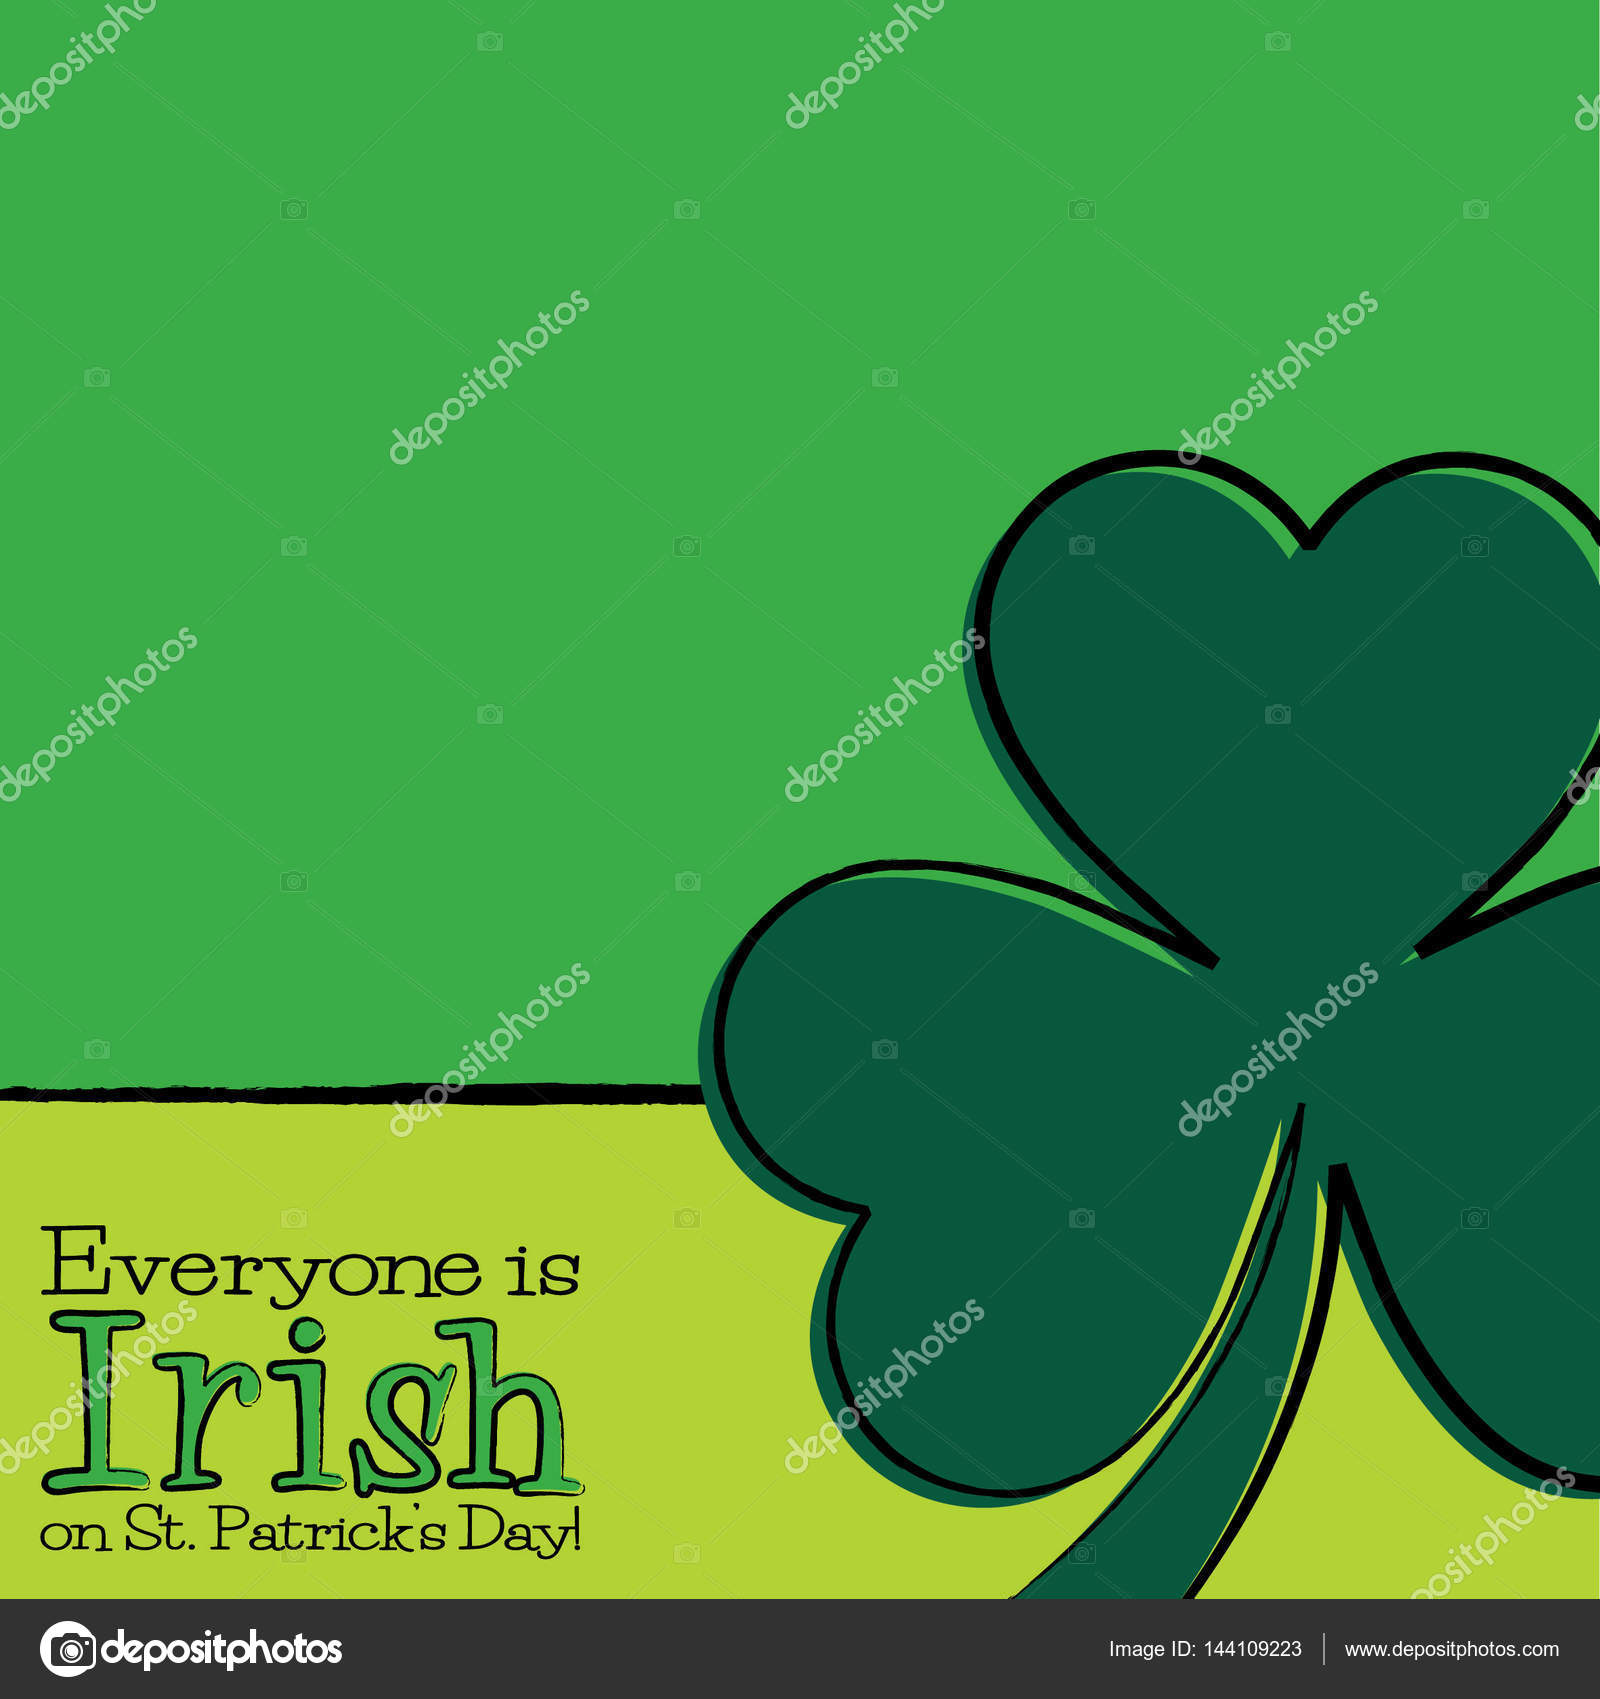 meet shamrock singles Irish dating sites in the united states irish dating sites in the united states with elitesingles, it's never been easier to meet irish dating in the united states singles irish dating free united states dating sites sites in the united states looking for aand as one of the founding nations.